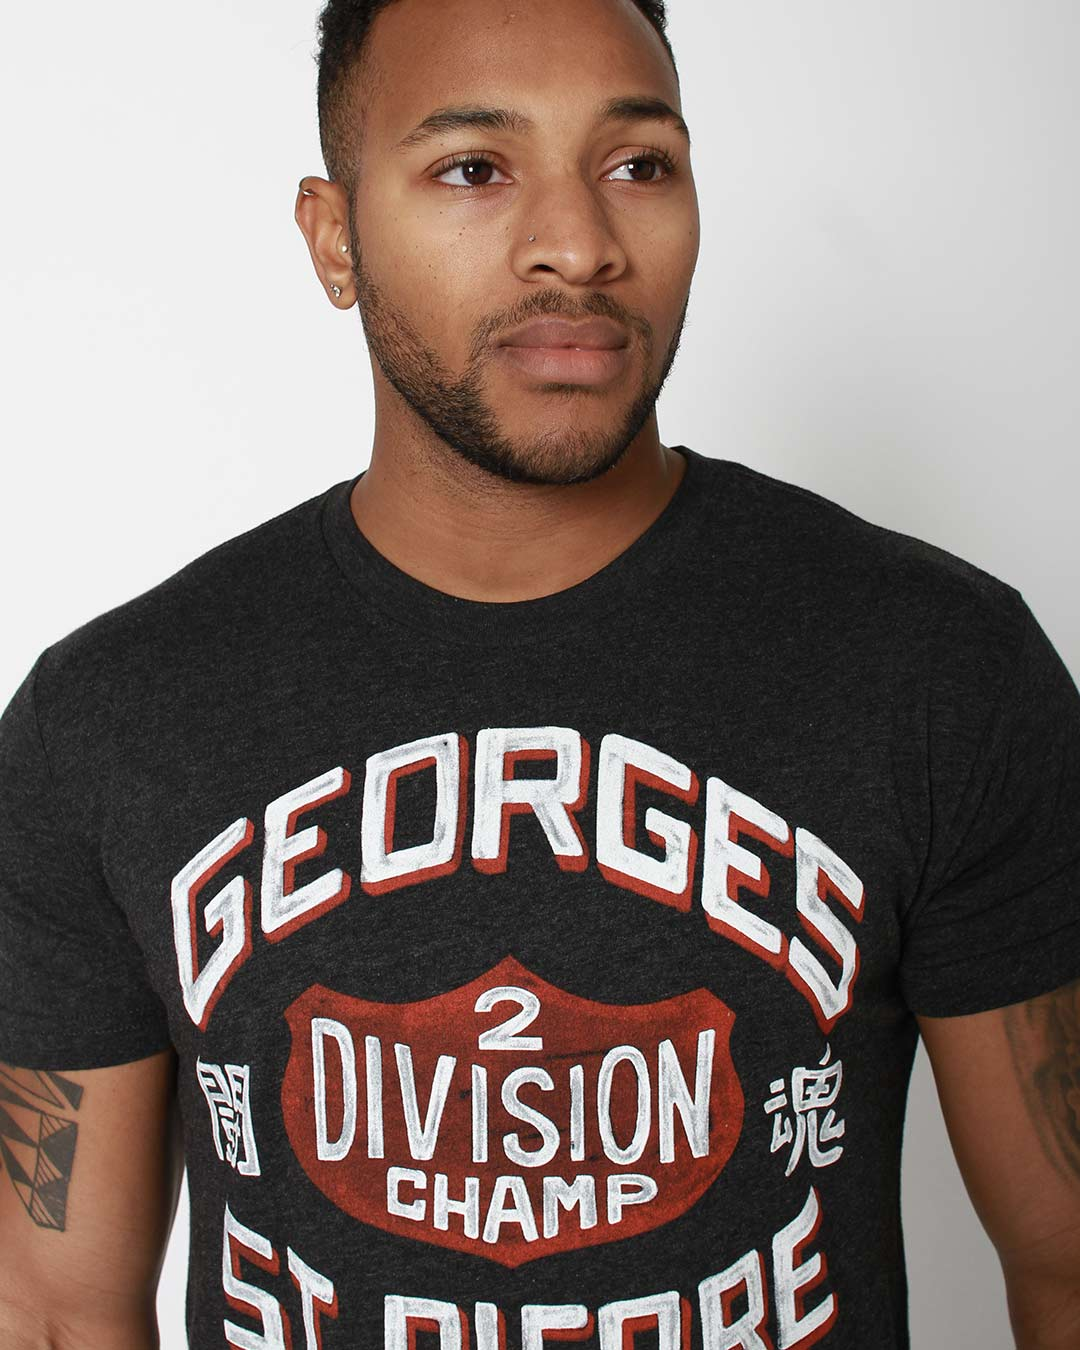 GSP 2 Division Champ Memento Tee